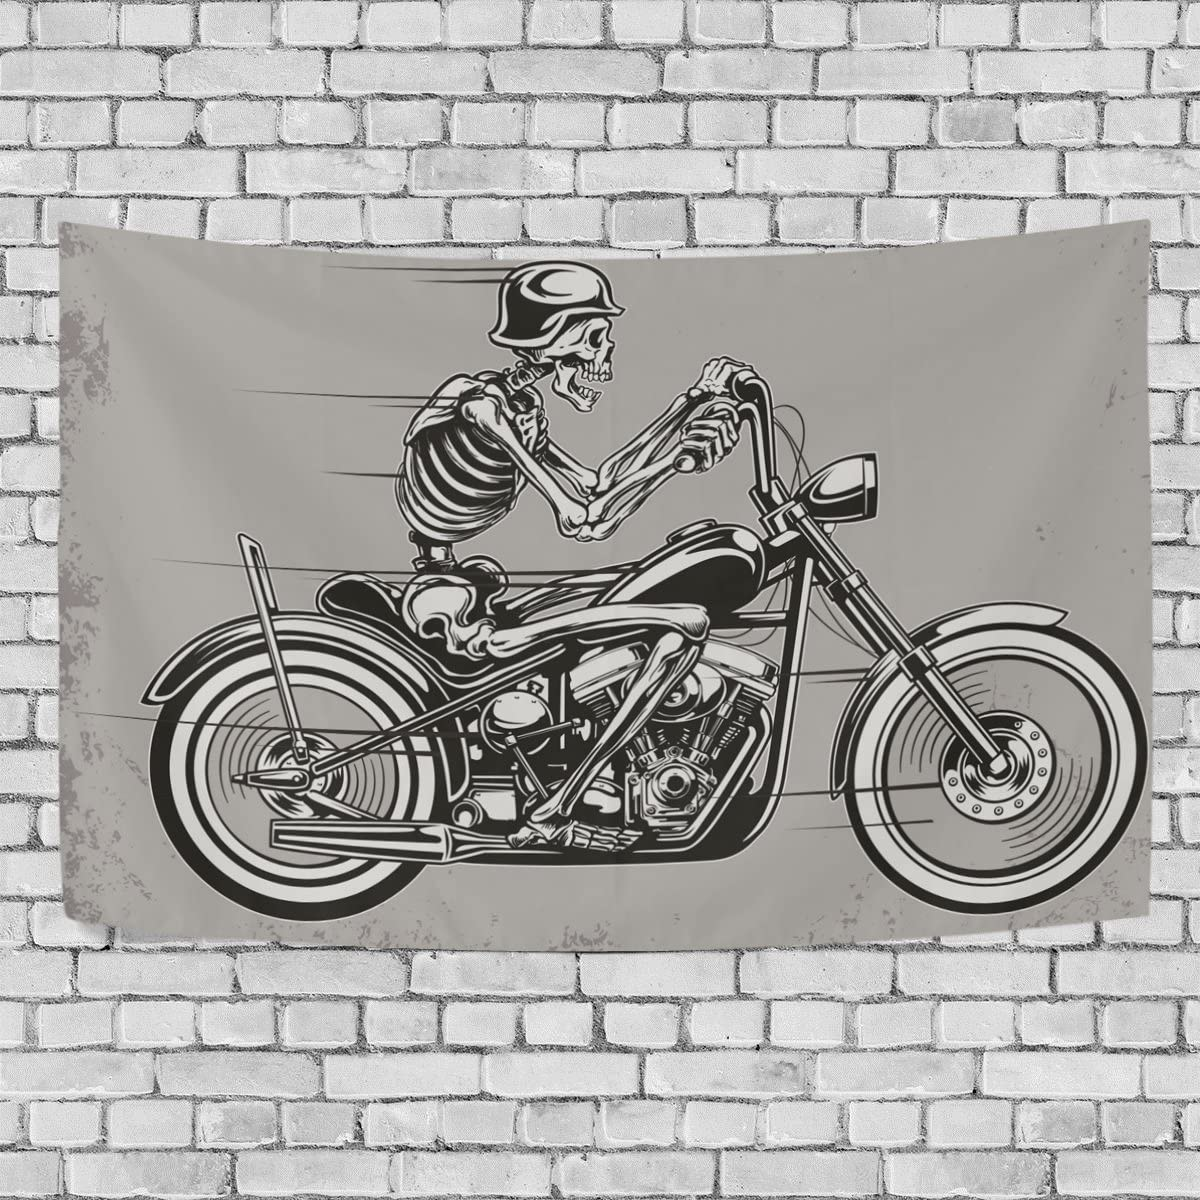 Tapestry Flag Skull Motorcycle Living Room Bedroom Dorm Home Decor Wall Hanging